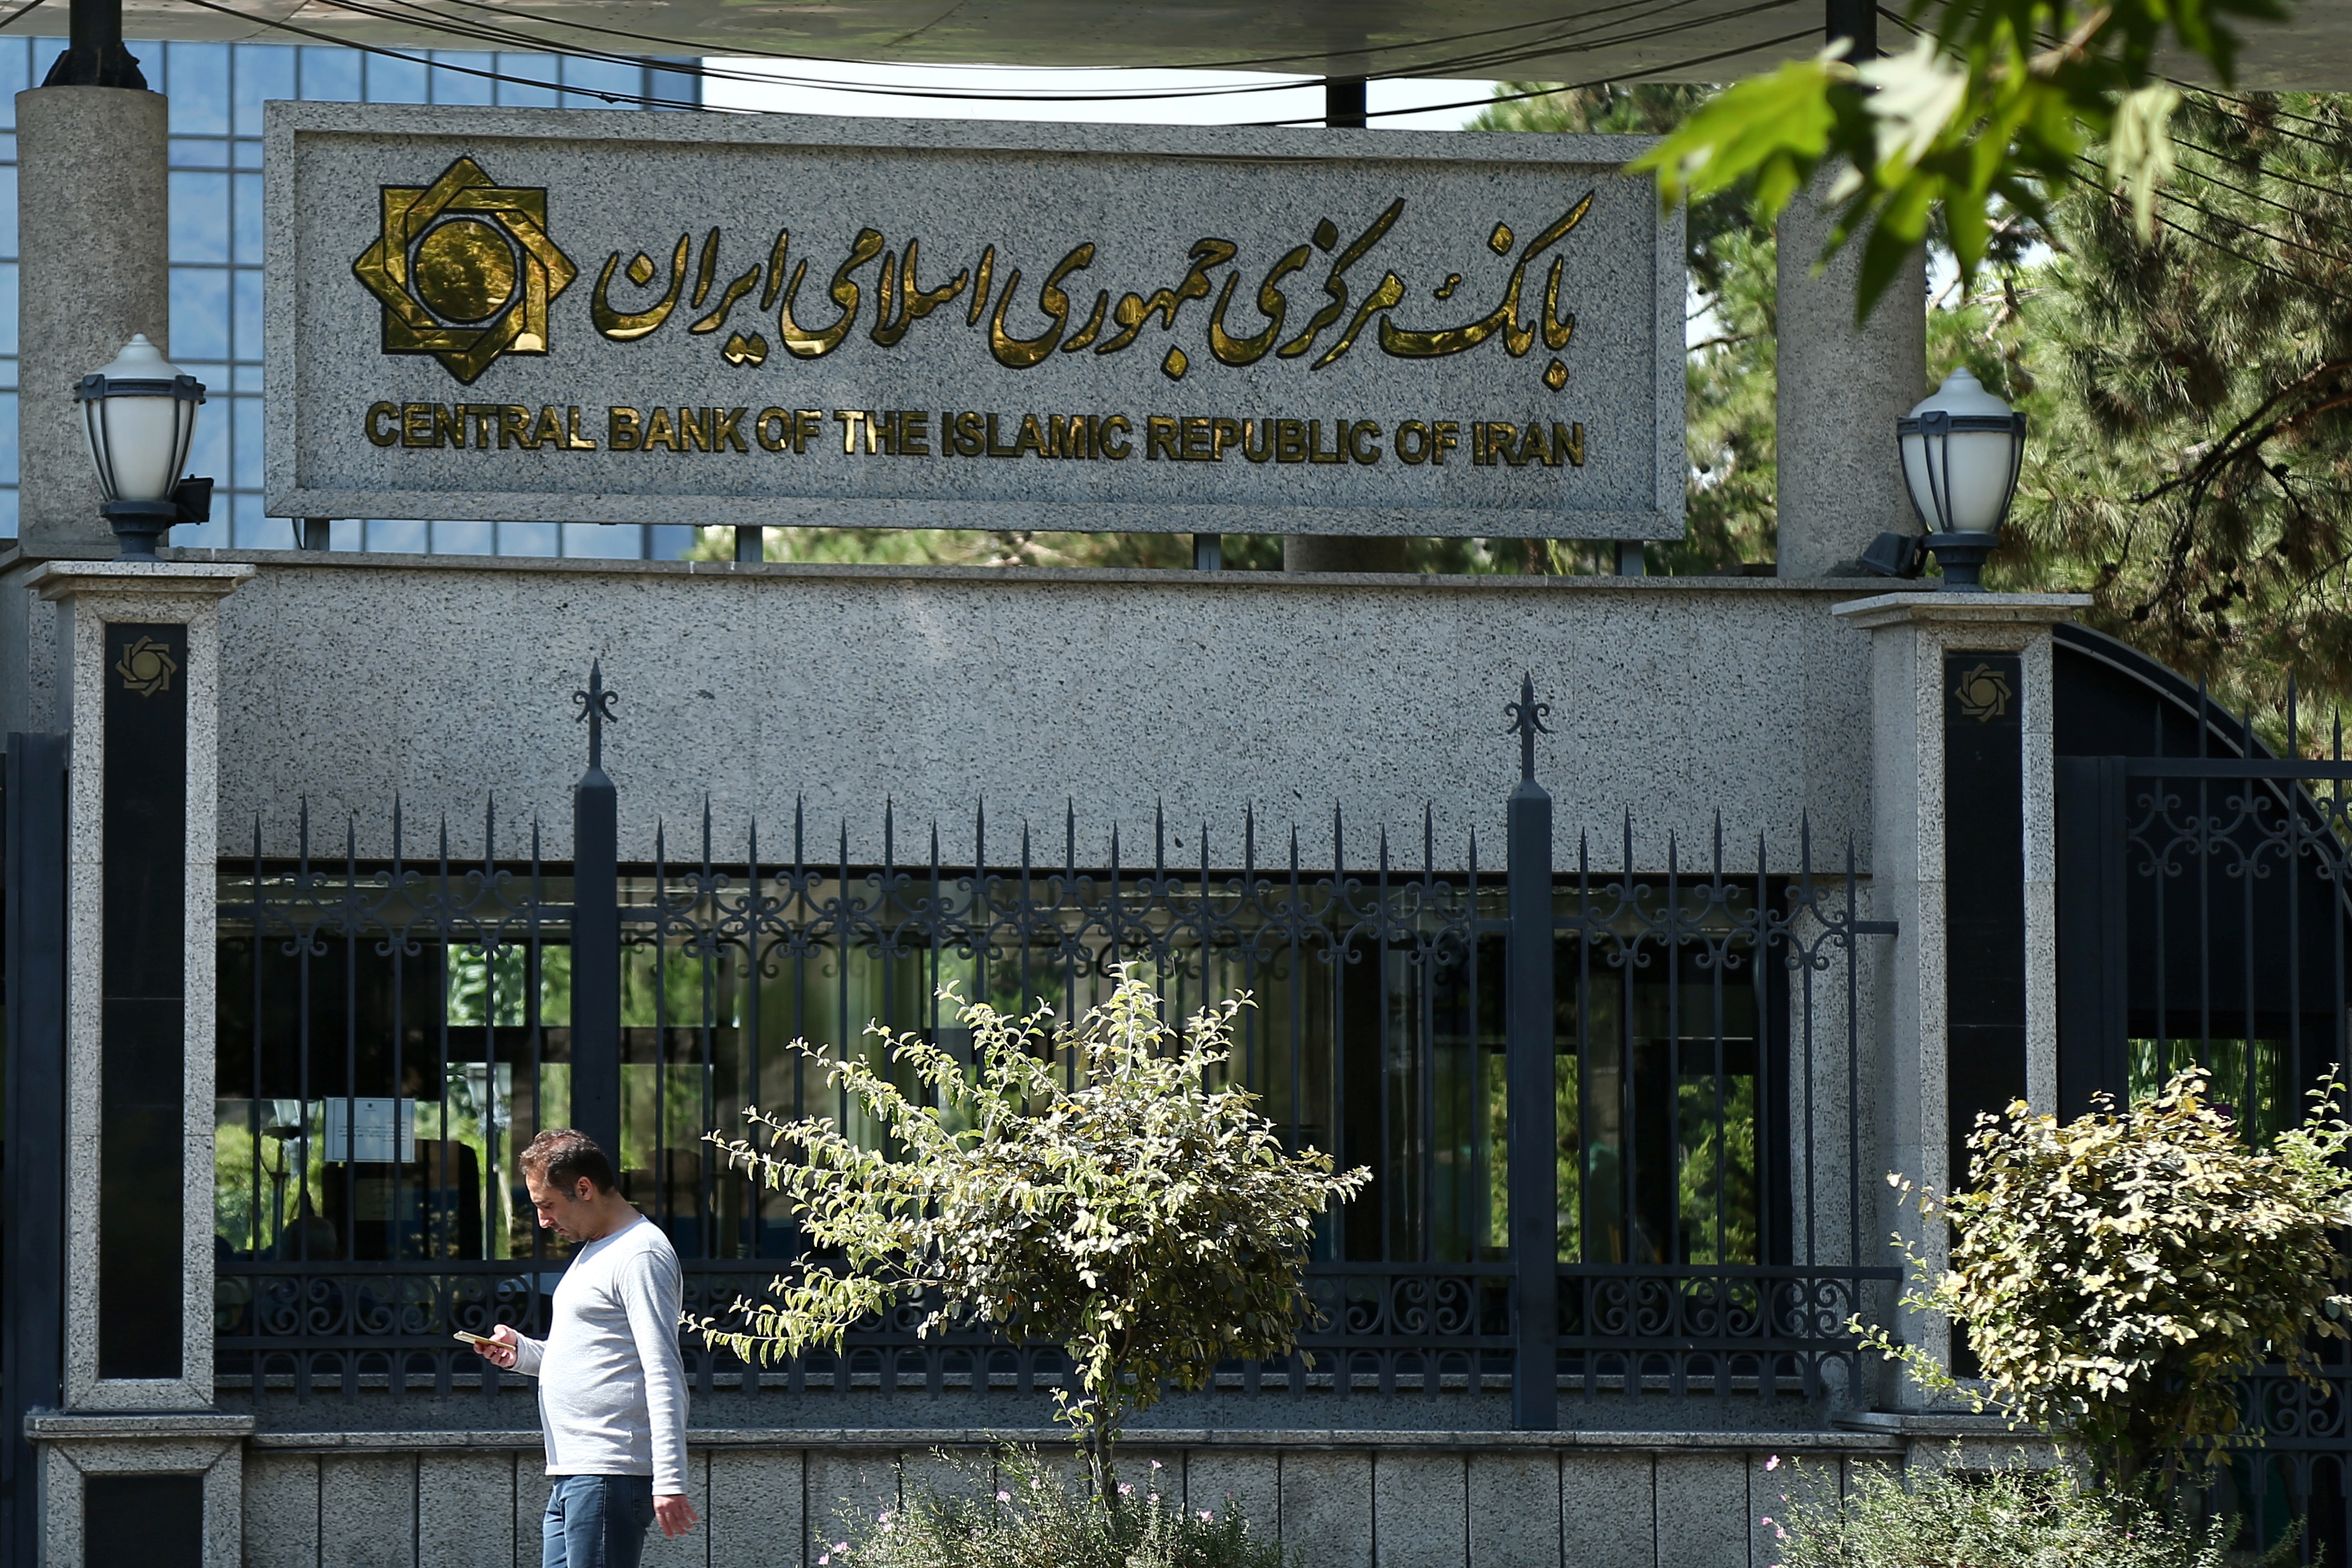 A man walks past the Central Bank of Iran in Tehran, Iran August 1, 2019. Nazanin Tabatabaee/WANA (West Asia News Agency) via REUTERS